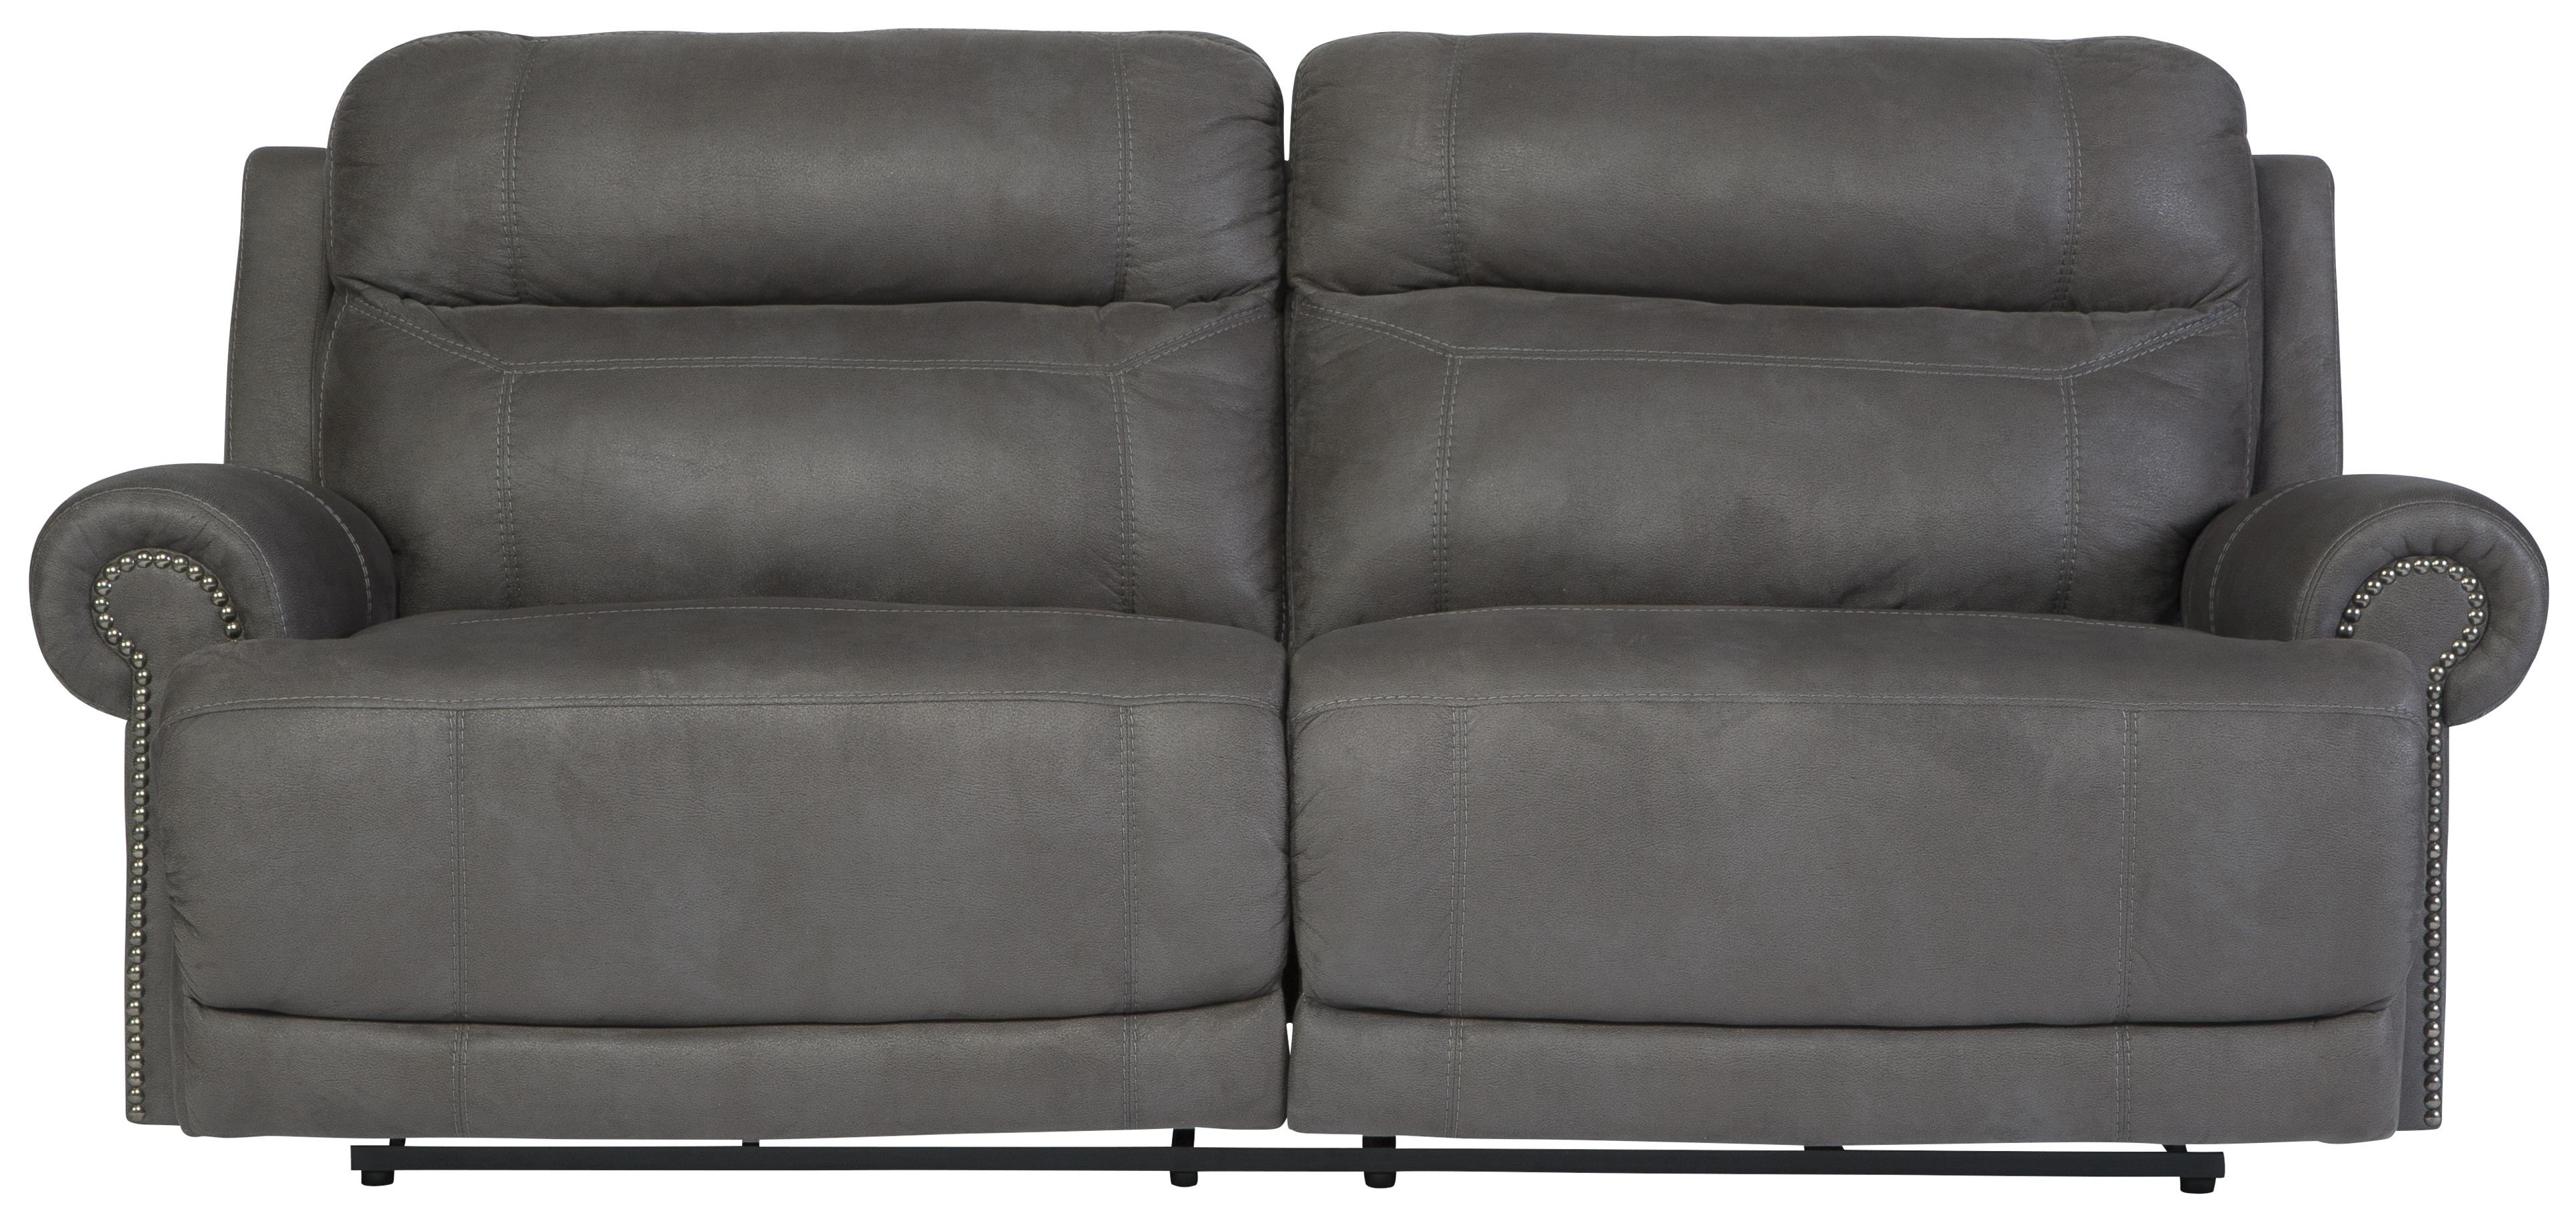 Signature Design by Ashley Austere - Gray 2 Seat Reclining Sofa - Item Number: 3840181